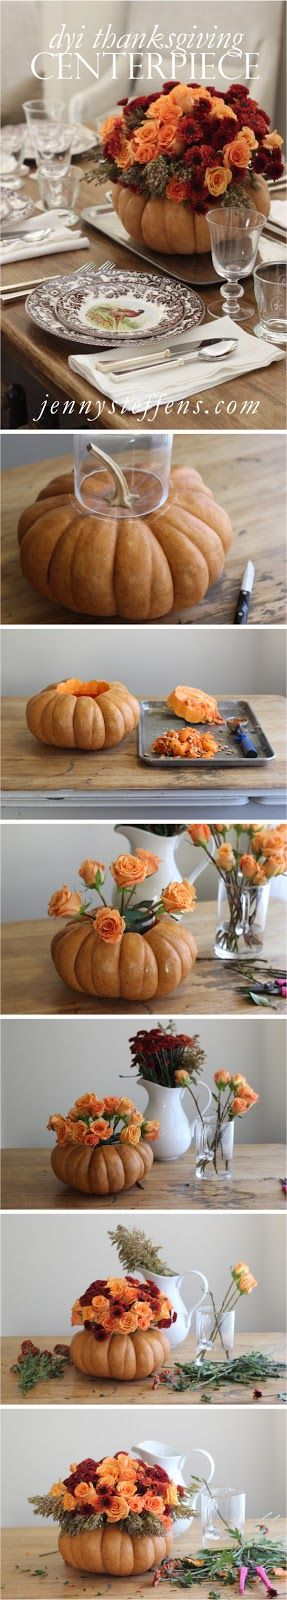 DIY Step-by-Step Rose & Mum Centerpiece in a Pumpkin for Thanksgiving  - get…